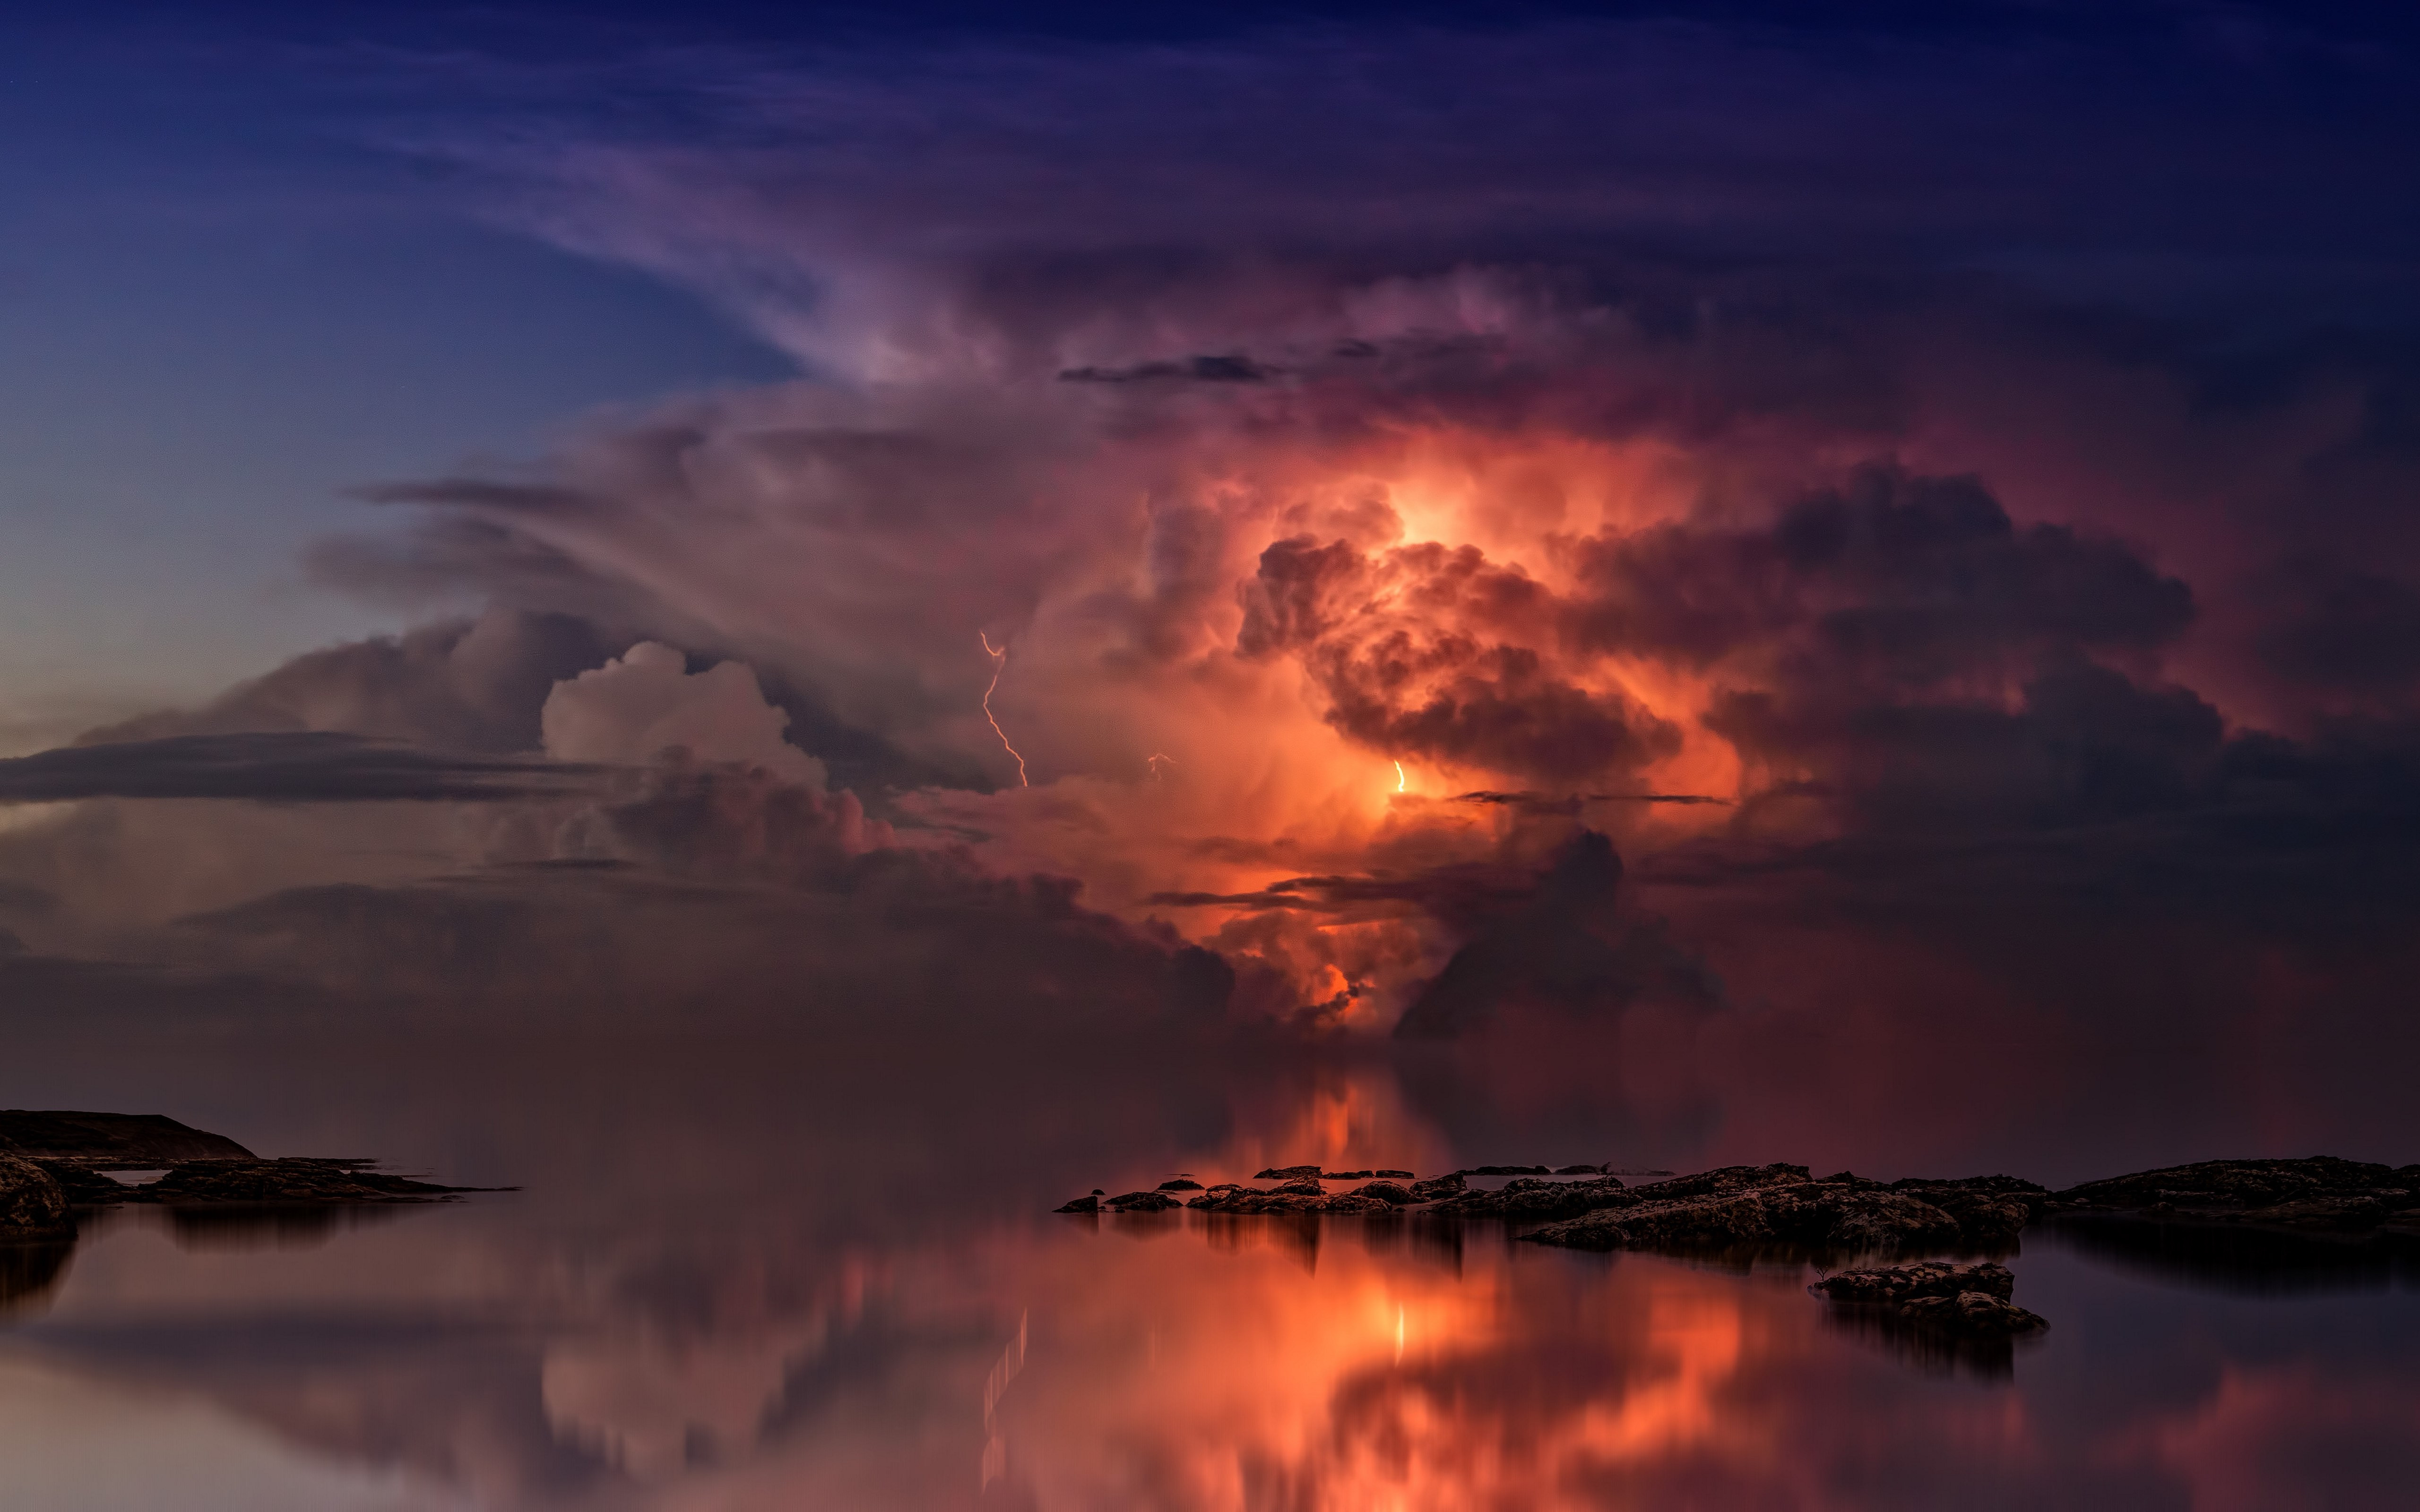 Lightning and thunderstorm in the sky wallpaper 5120x3200